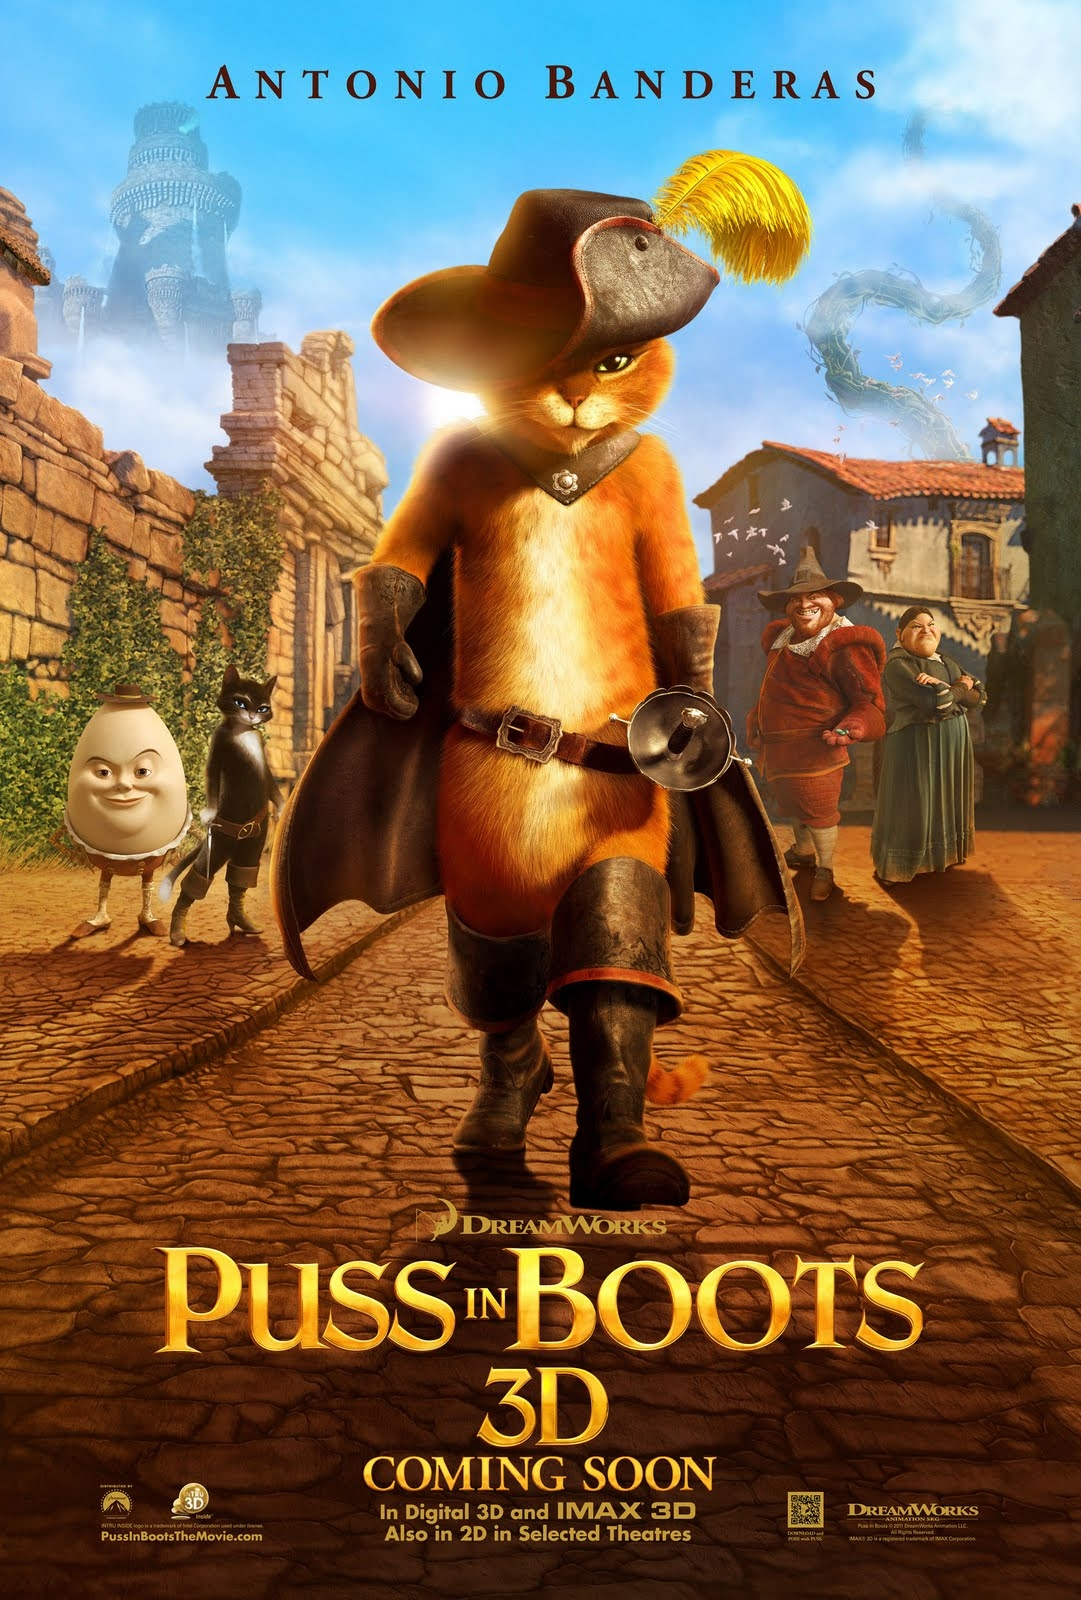 http://4.bp.blogspot.com/-8SqVRACu2bw/TnuU8h-8XsI/AAAAAAAABKw/1l7zGI2afZQ/s1600/3d_movie_Puss_in_boots_movie_%2Bposter.jpg